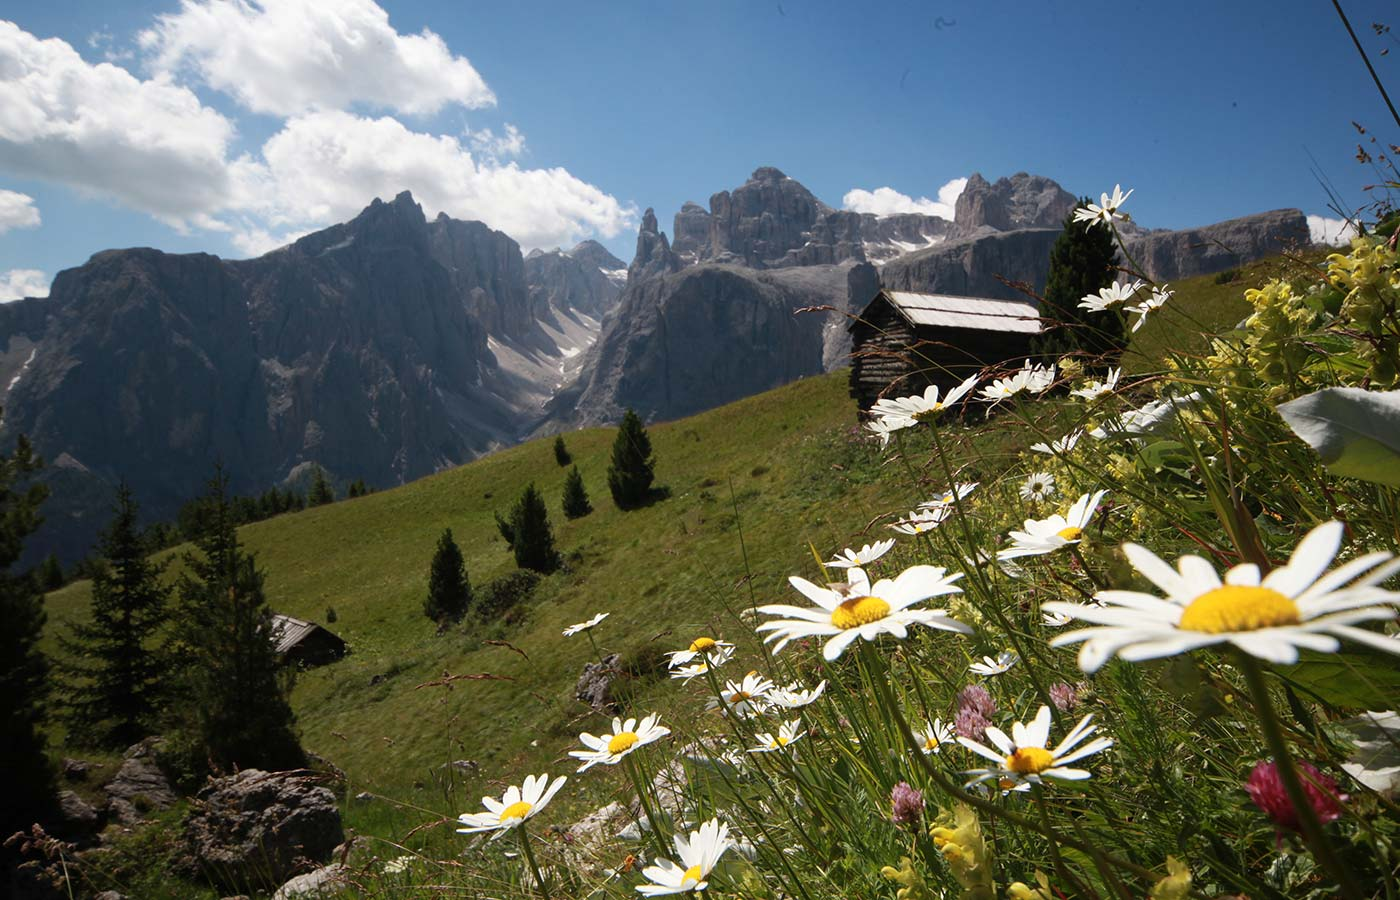 Flowery meadows, mountain huts and Dolomites in the sun